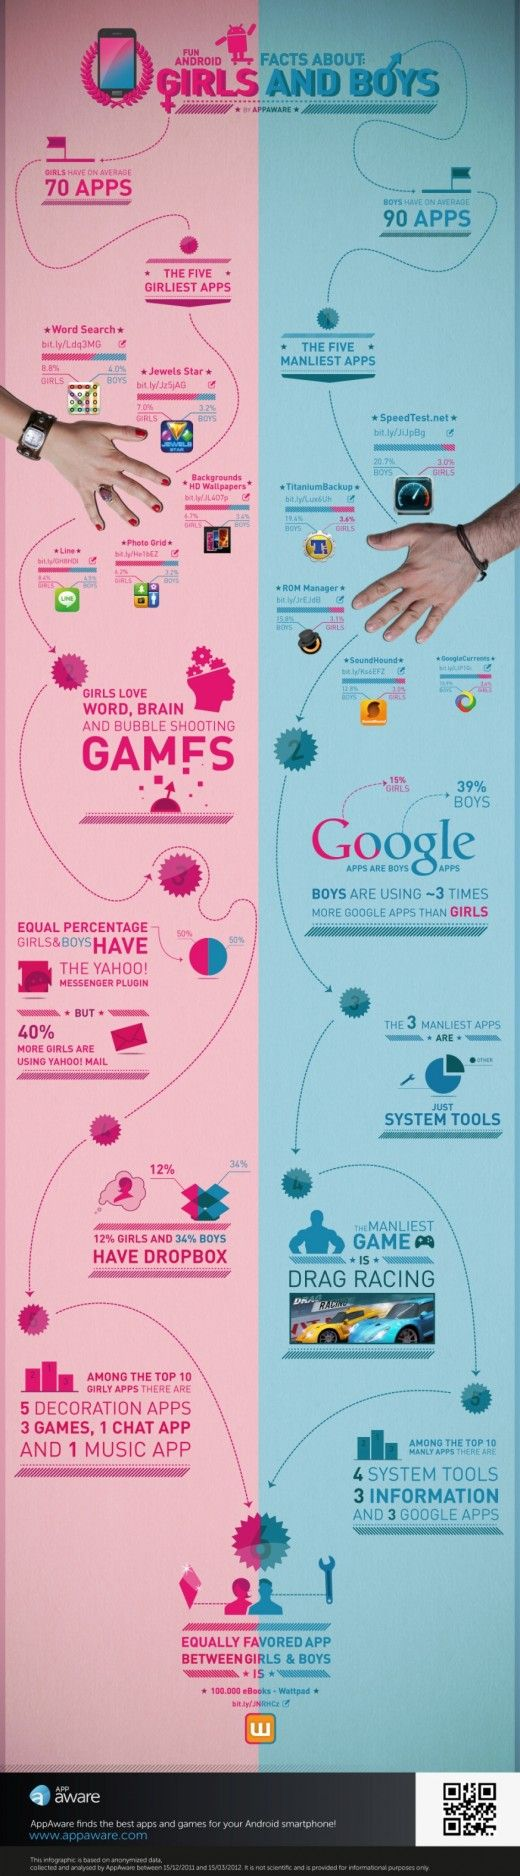 Android usage facts about girls and boys (AppAware, 2012)